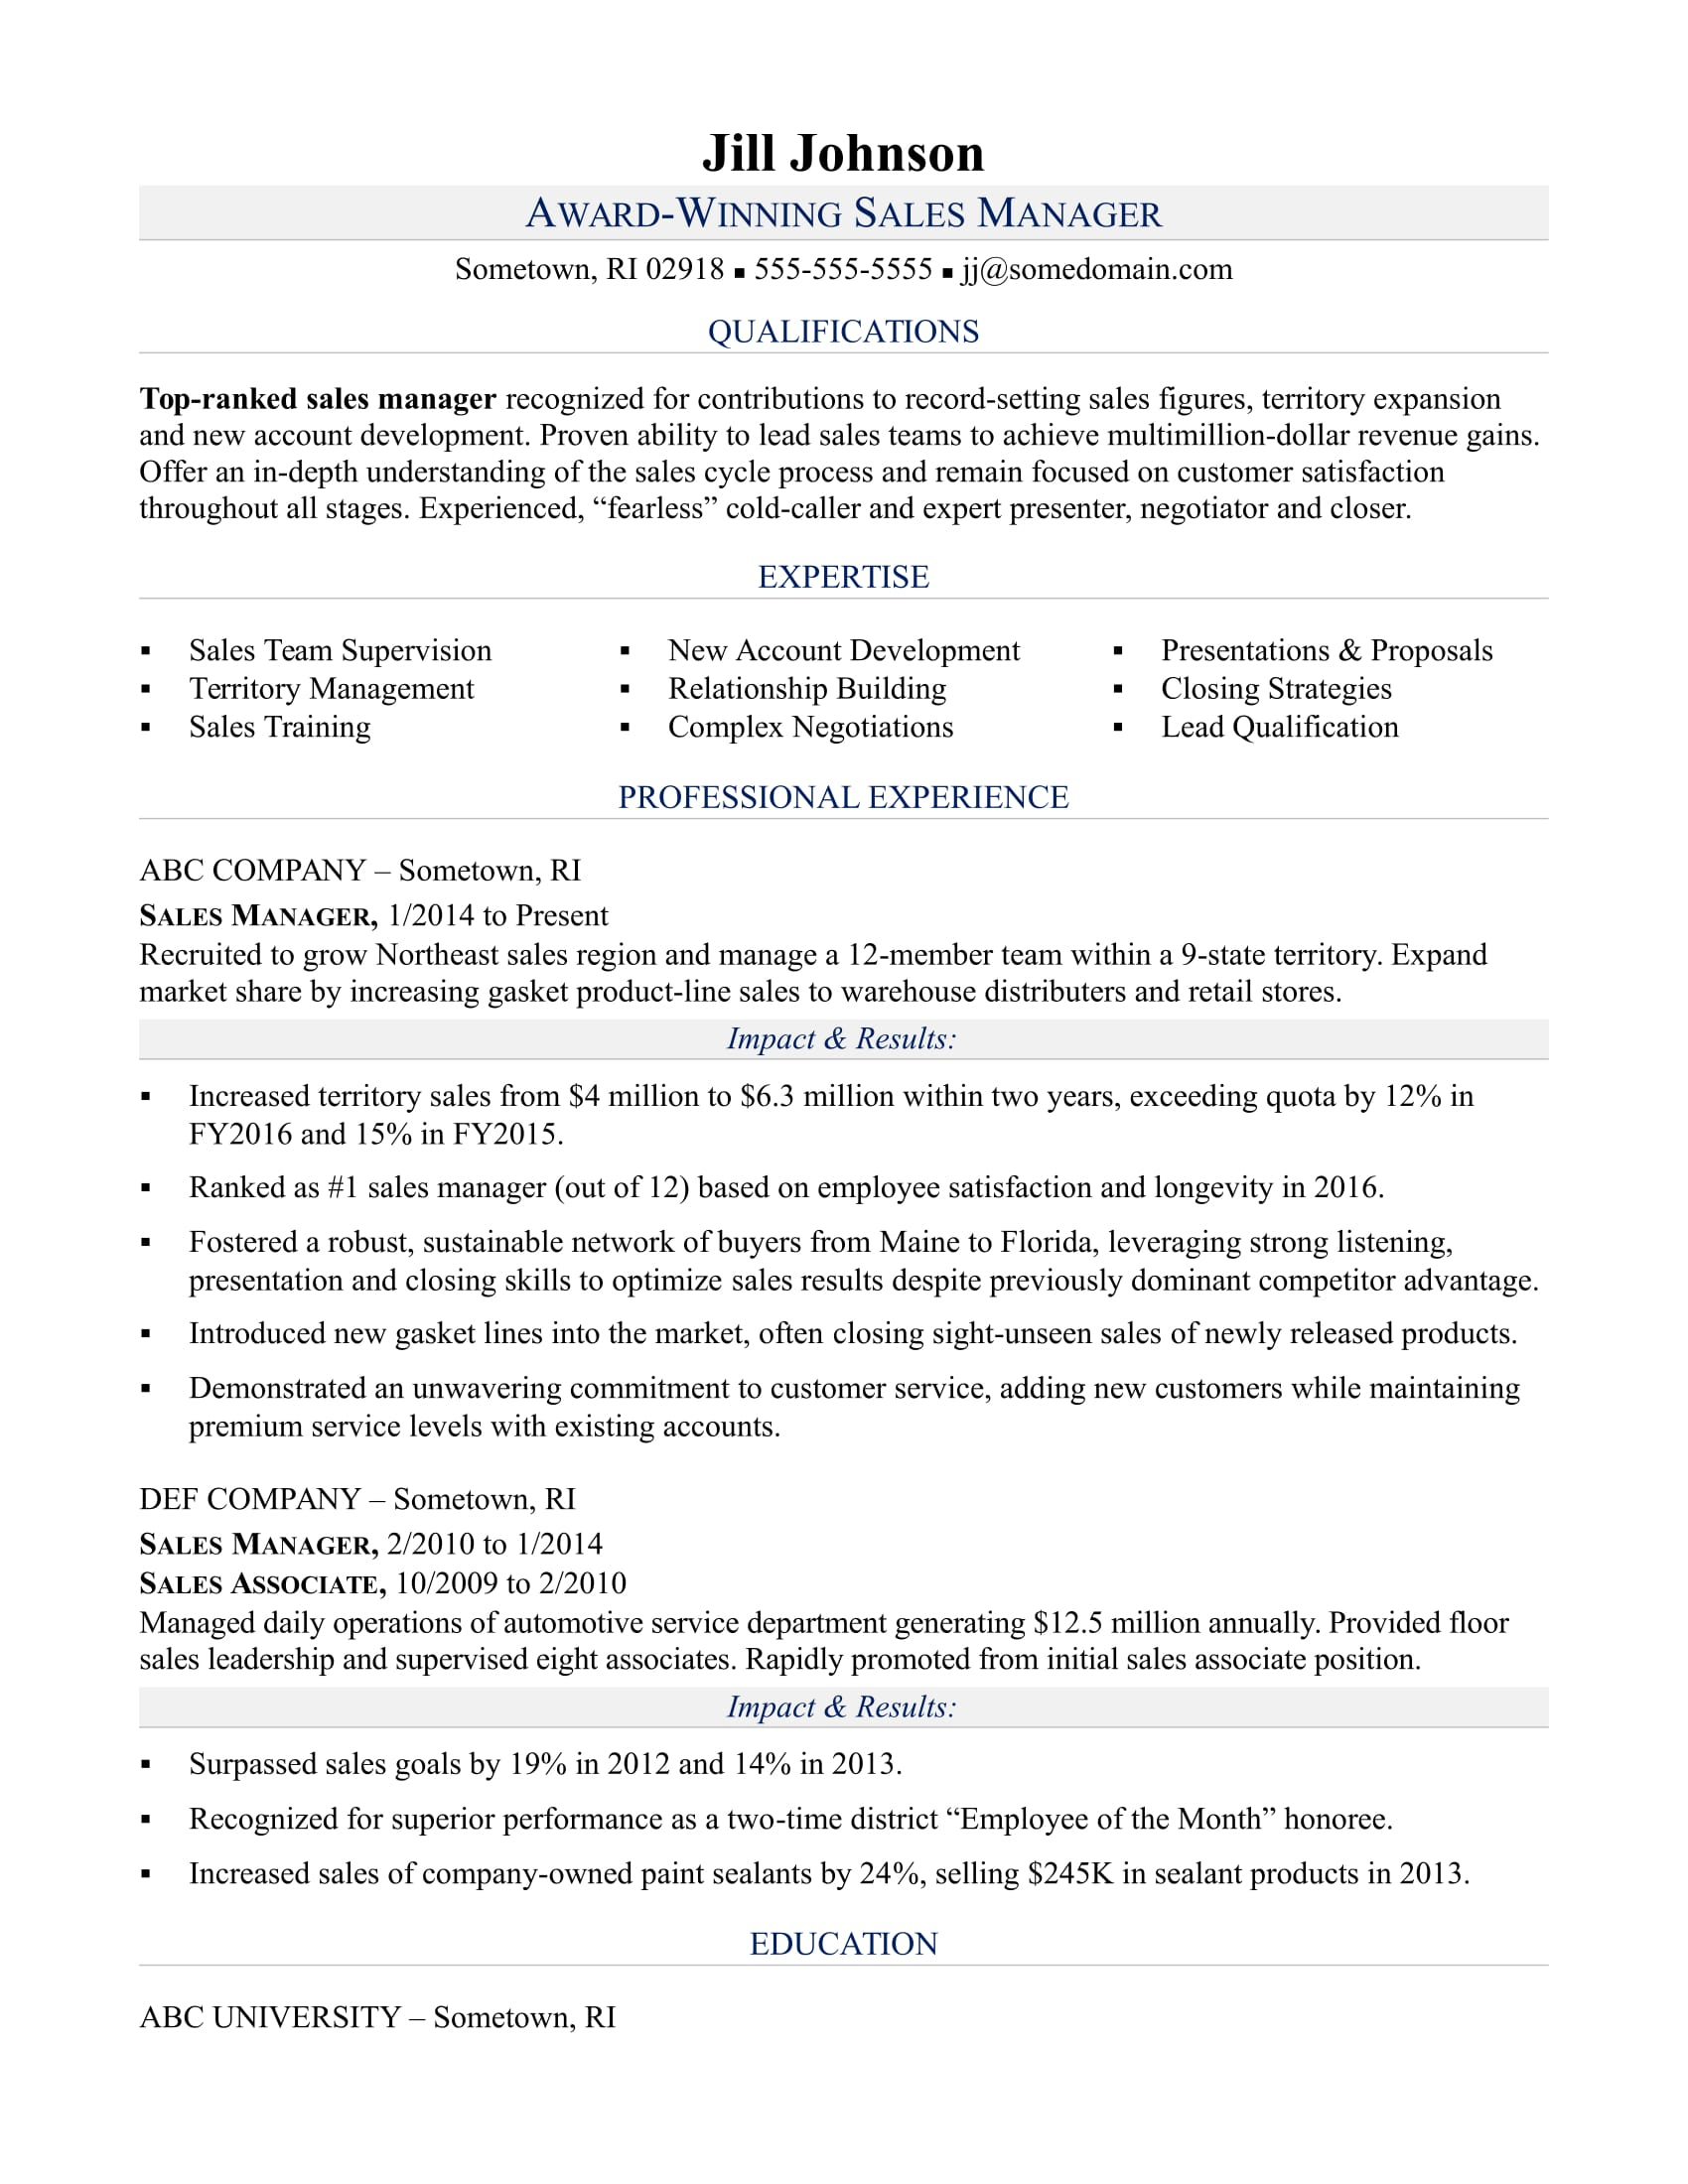 sample resume for a sales manager - Sales Manager Resume Samples